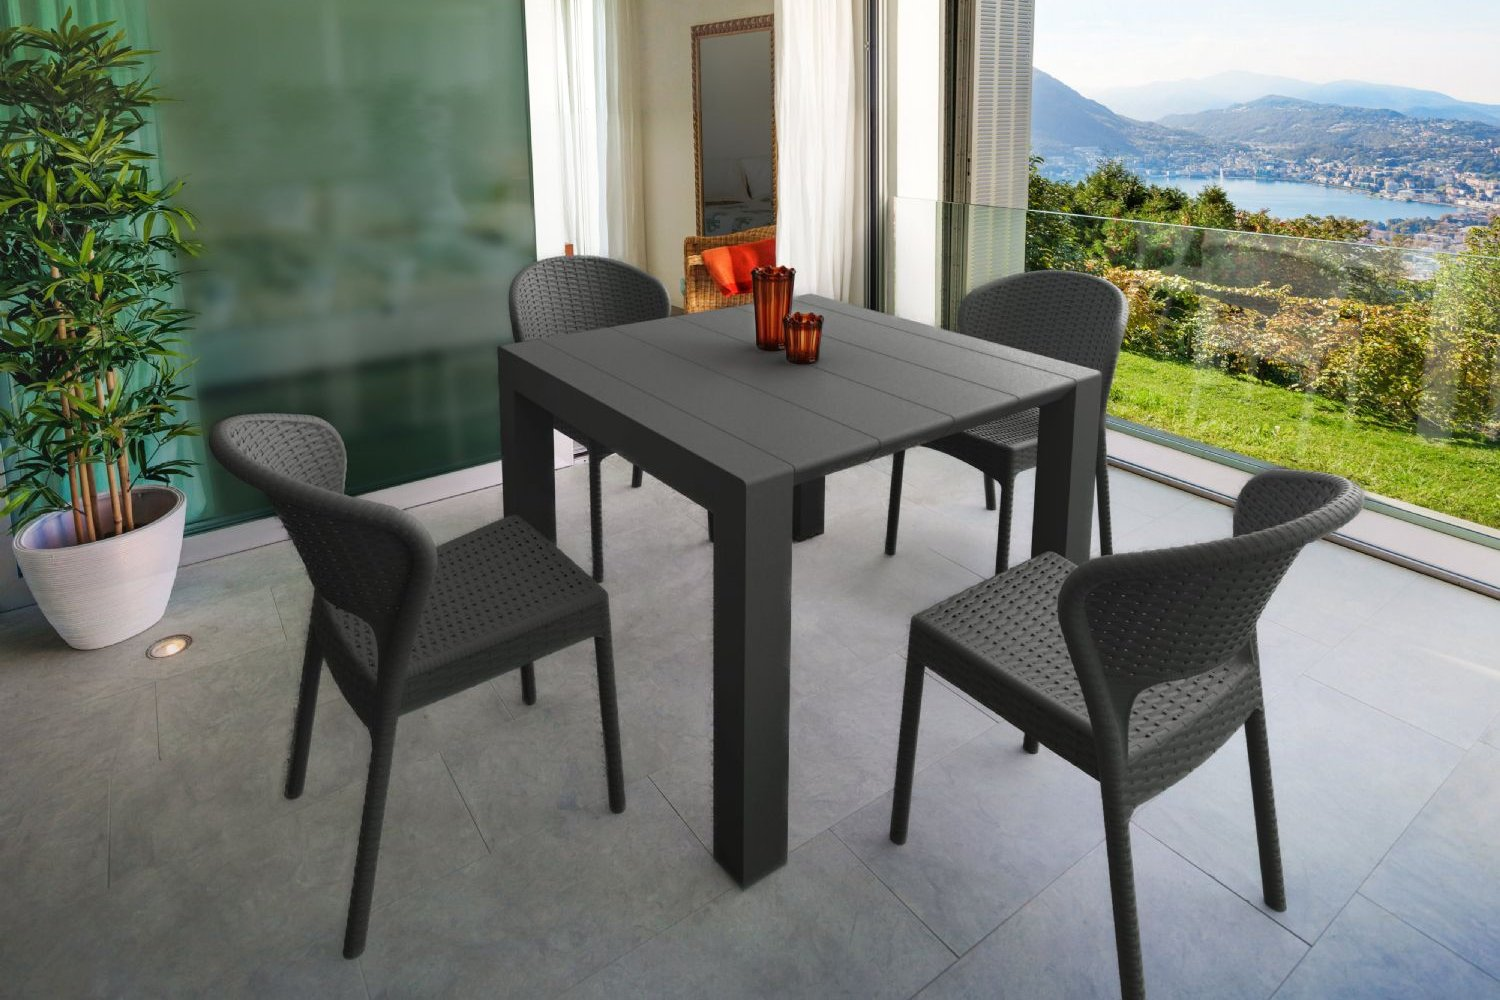 Daytona Extendable Dining Set 5 Piece Brown ISP8182S-BR - 2